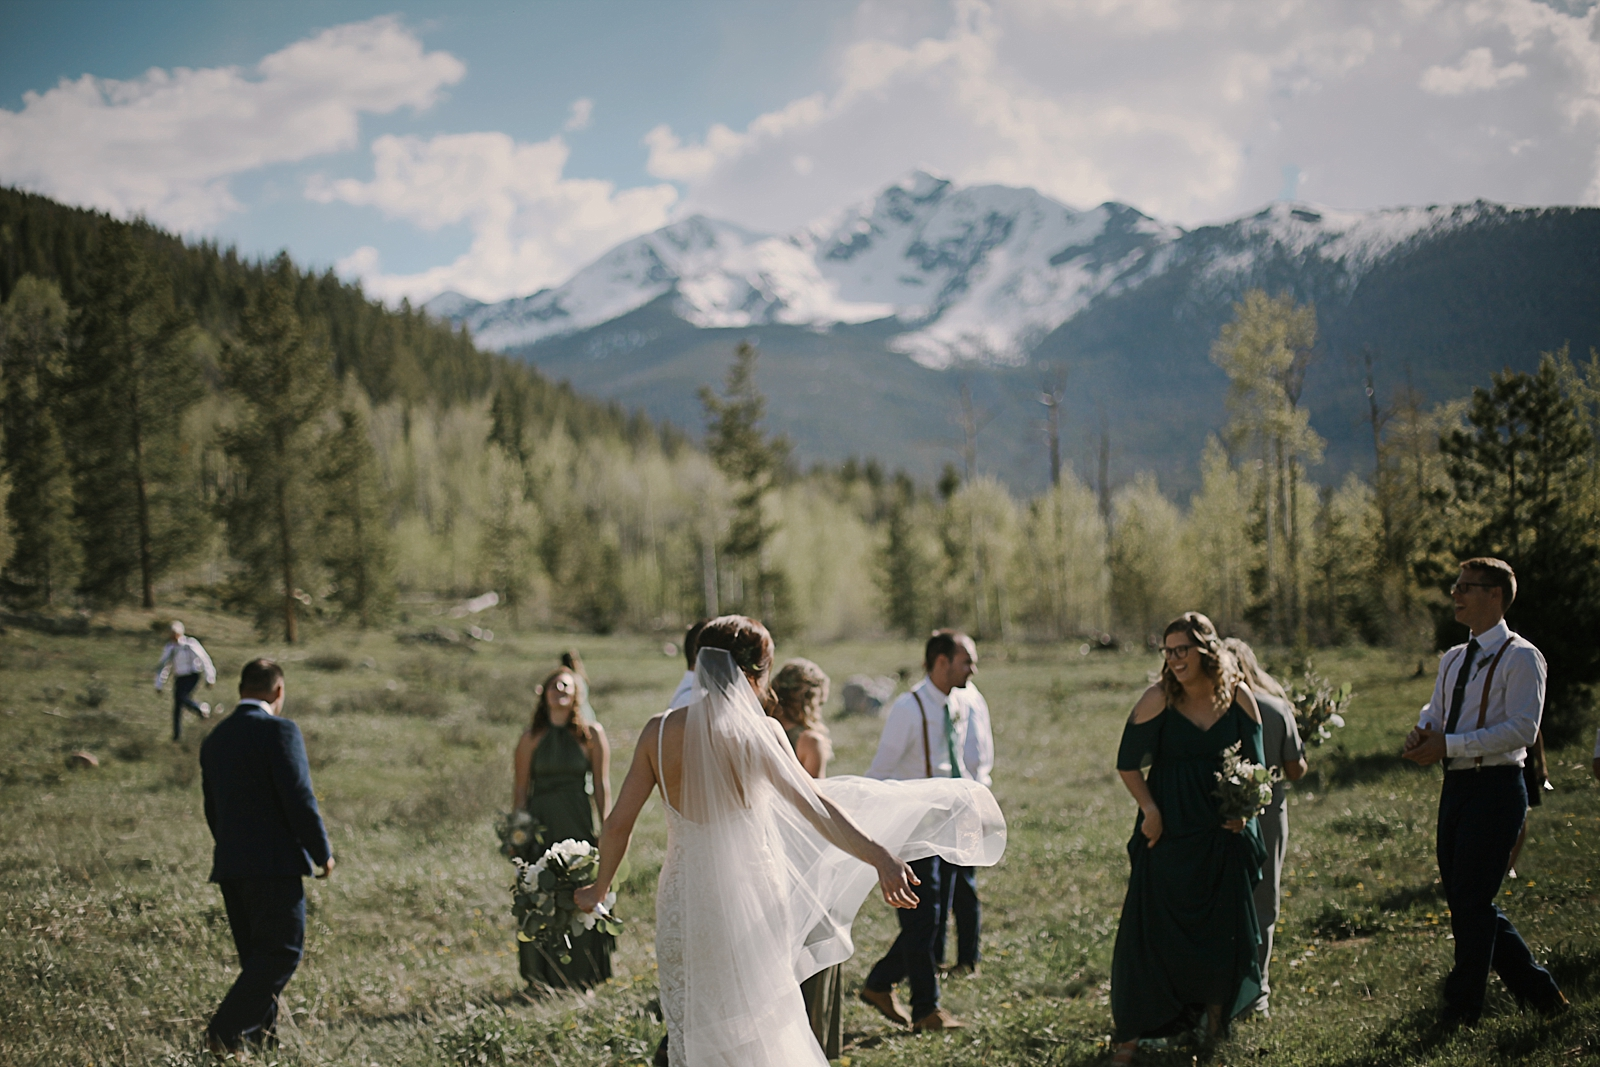 bridal party at agape outpost, the church at agape outpost wedding, breckenridge colorado wedding, breckenridge colorado wedding photographer, agape outpost wedding photographer